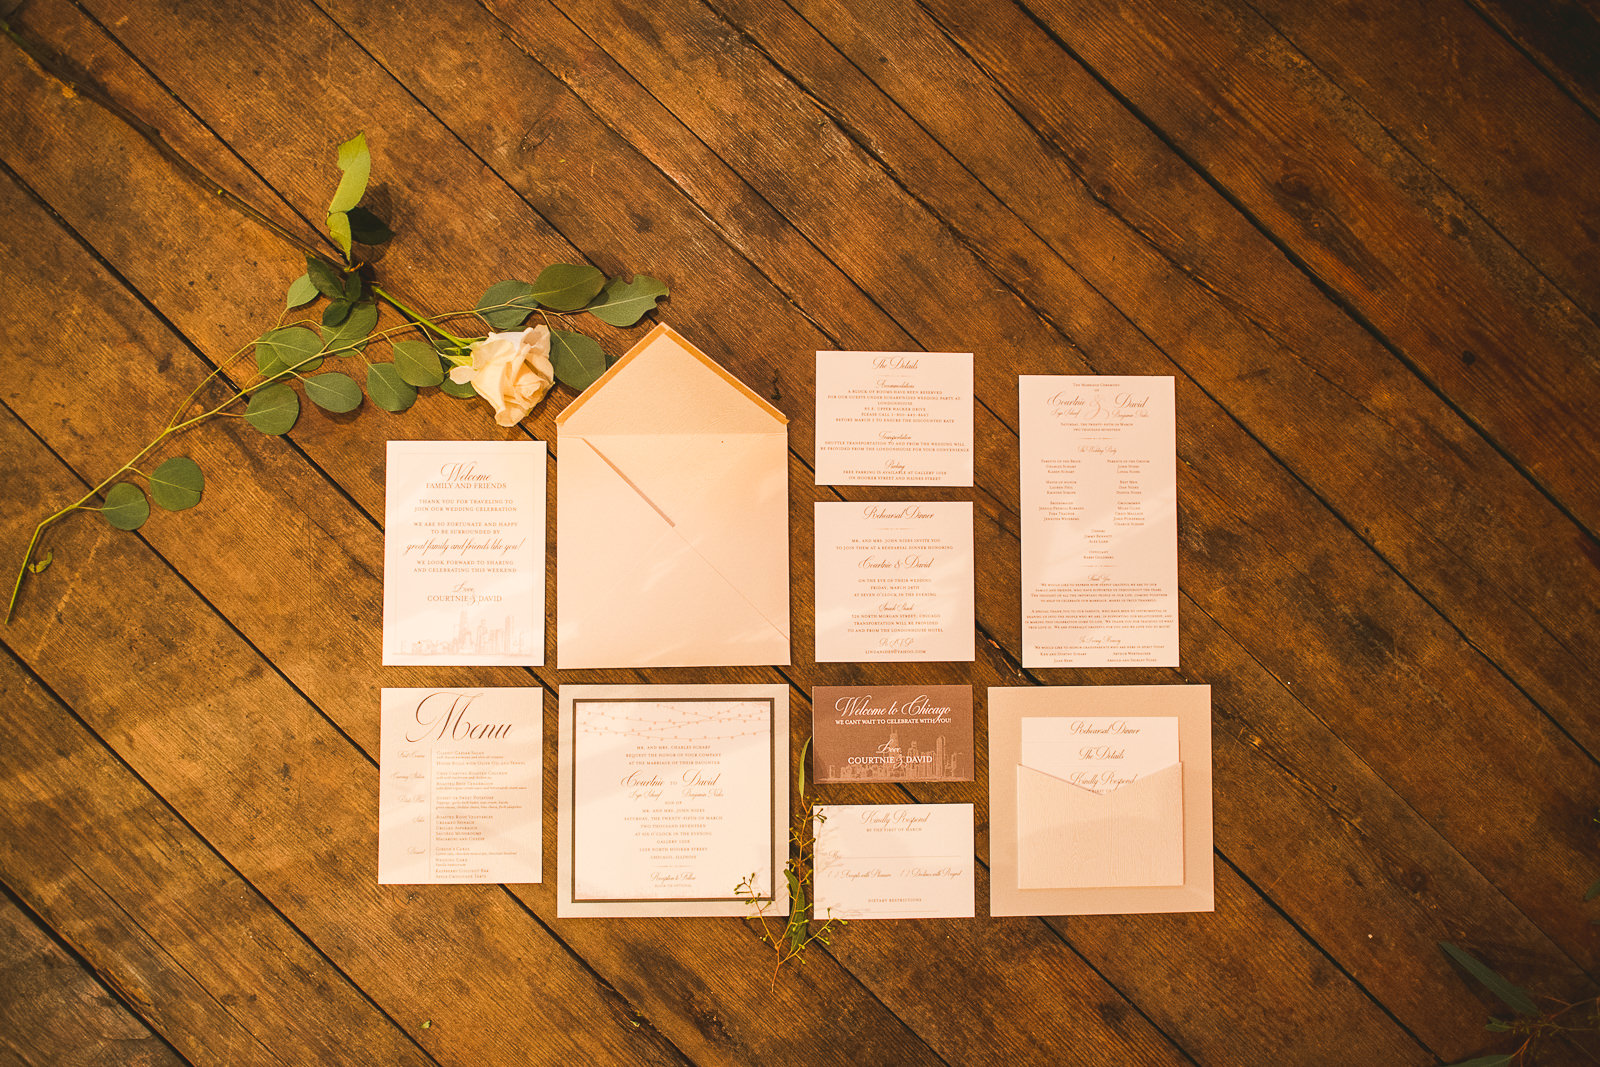 34 gallery 1028 wedding invites - Chicago Wedding Photography at Gallery 1028 // Courtnie + David